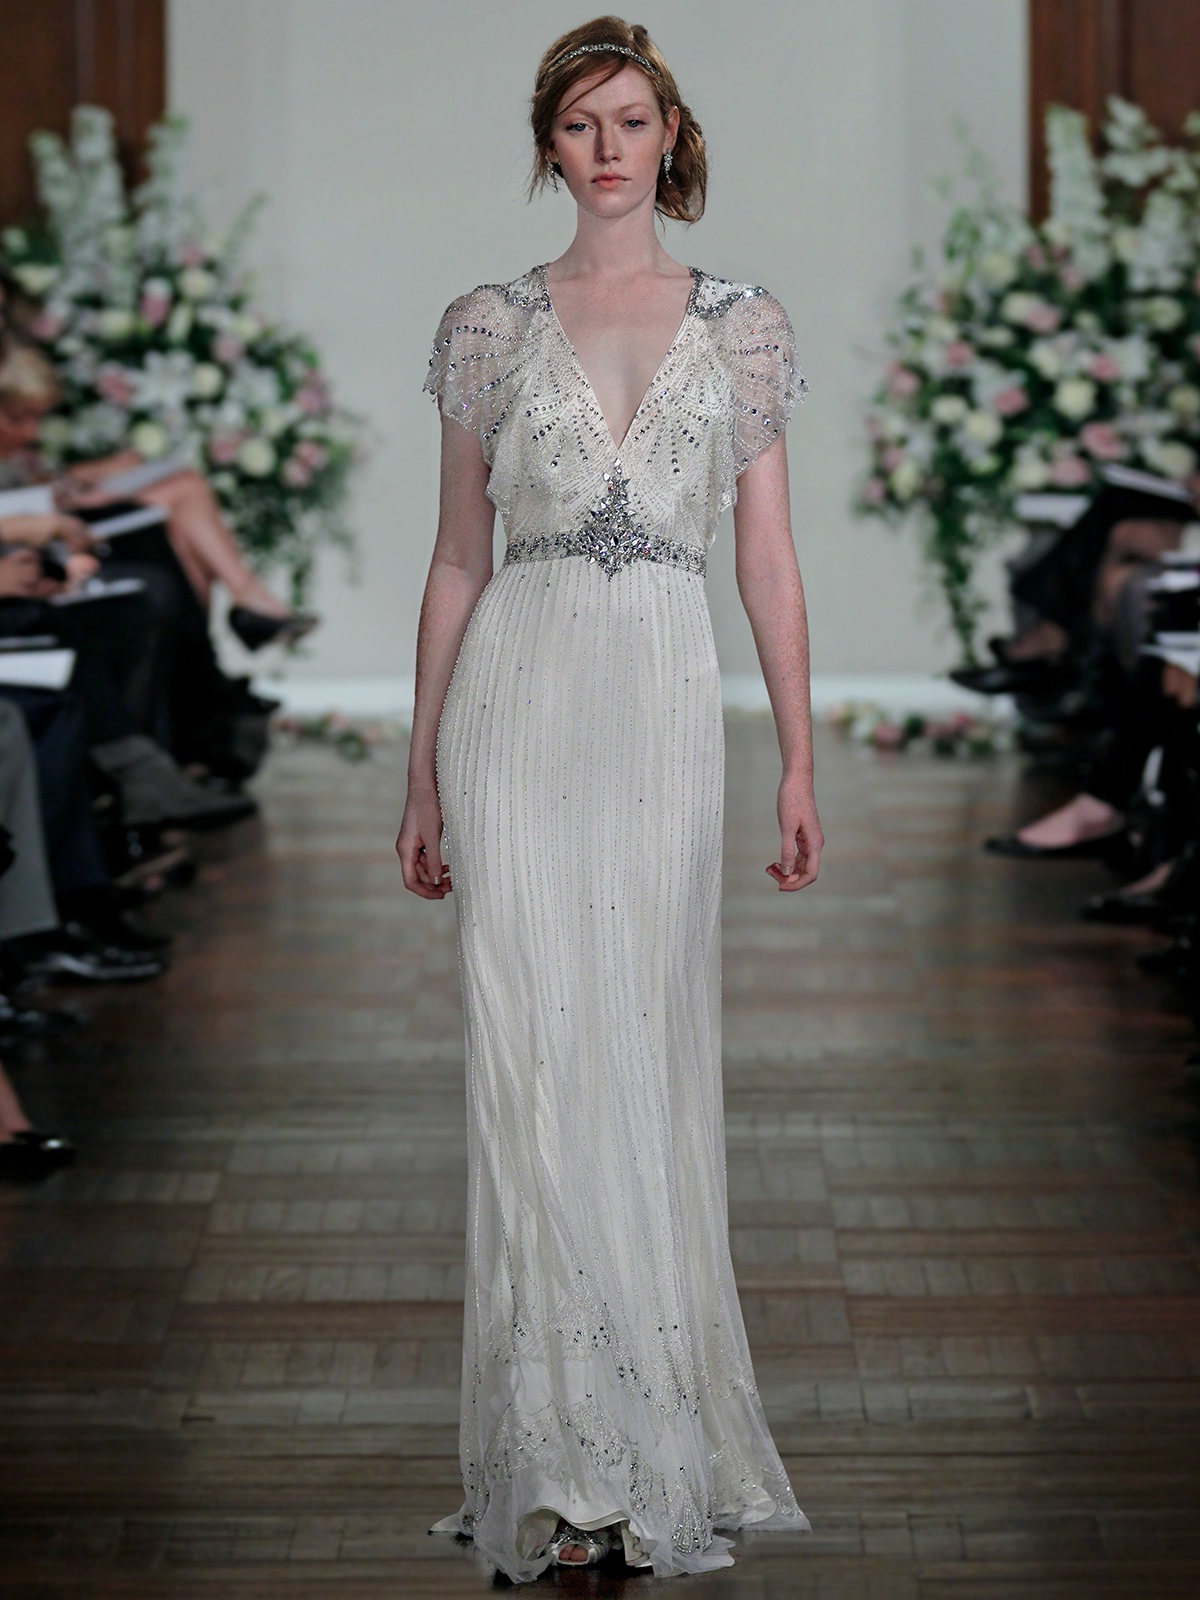 Jenny packham 2013 bridal spring wedding dresses for Jenny packham wedding dresses 2013